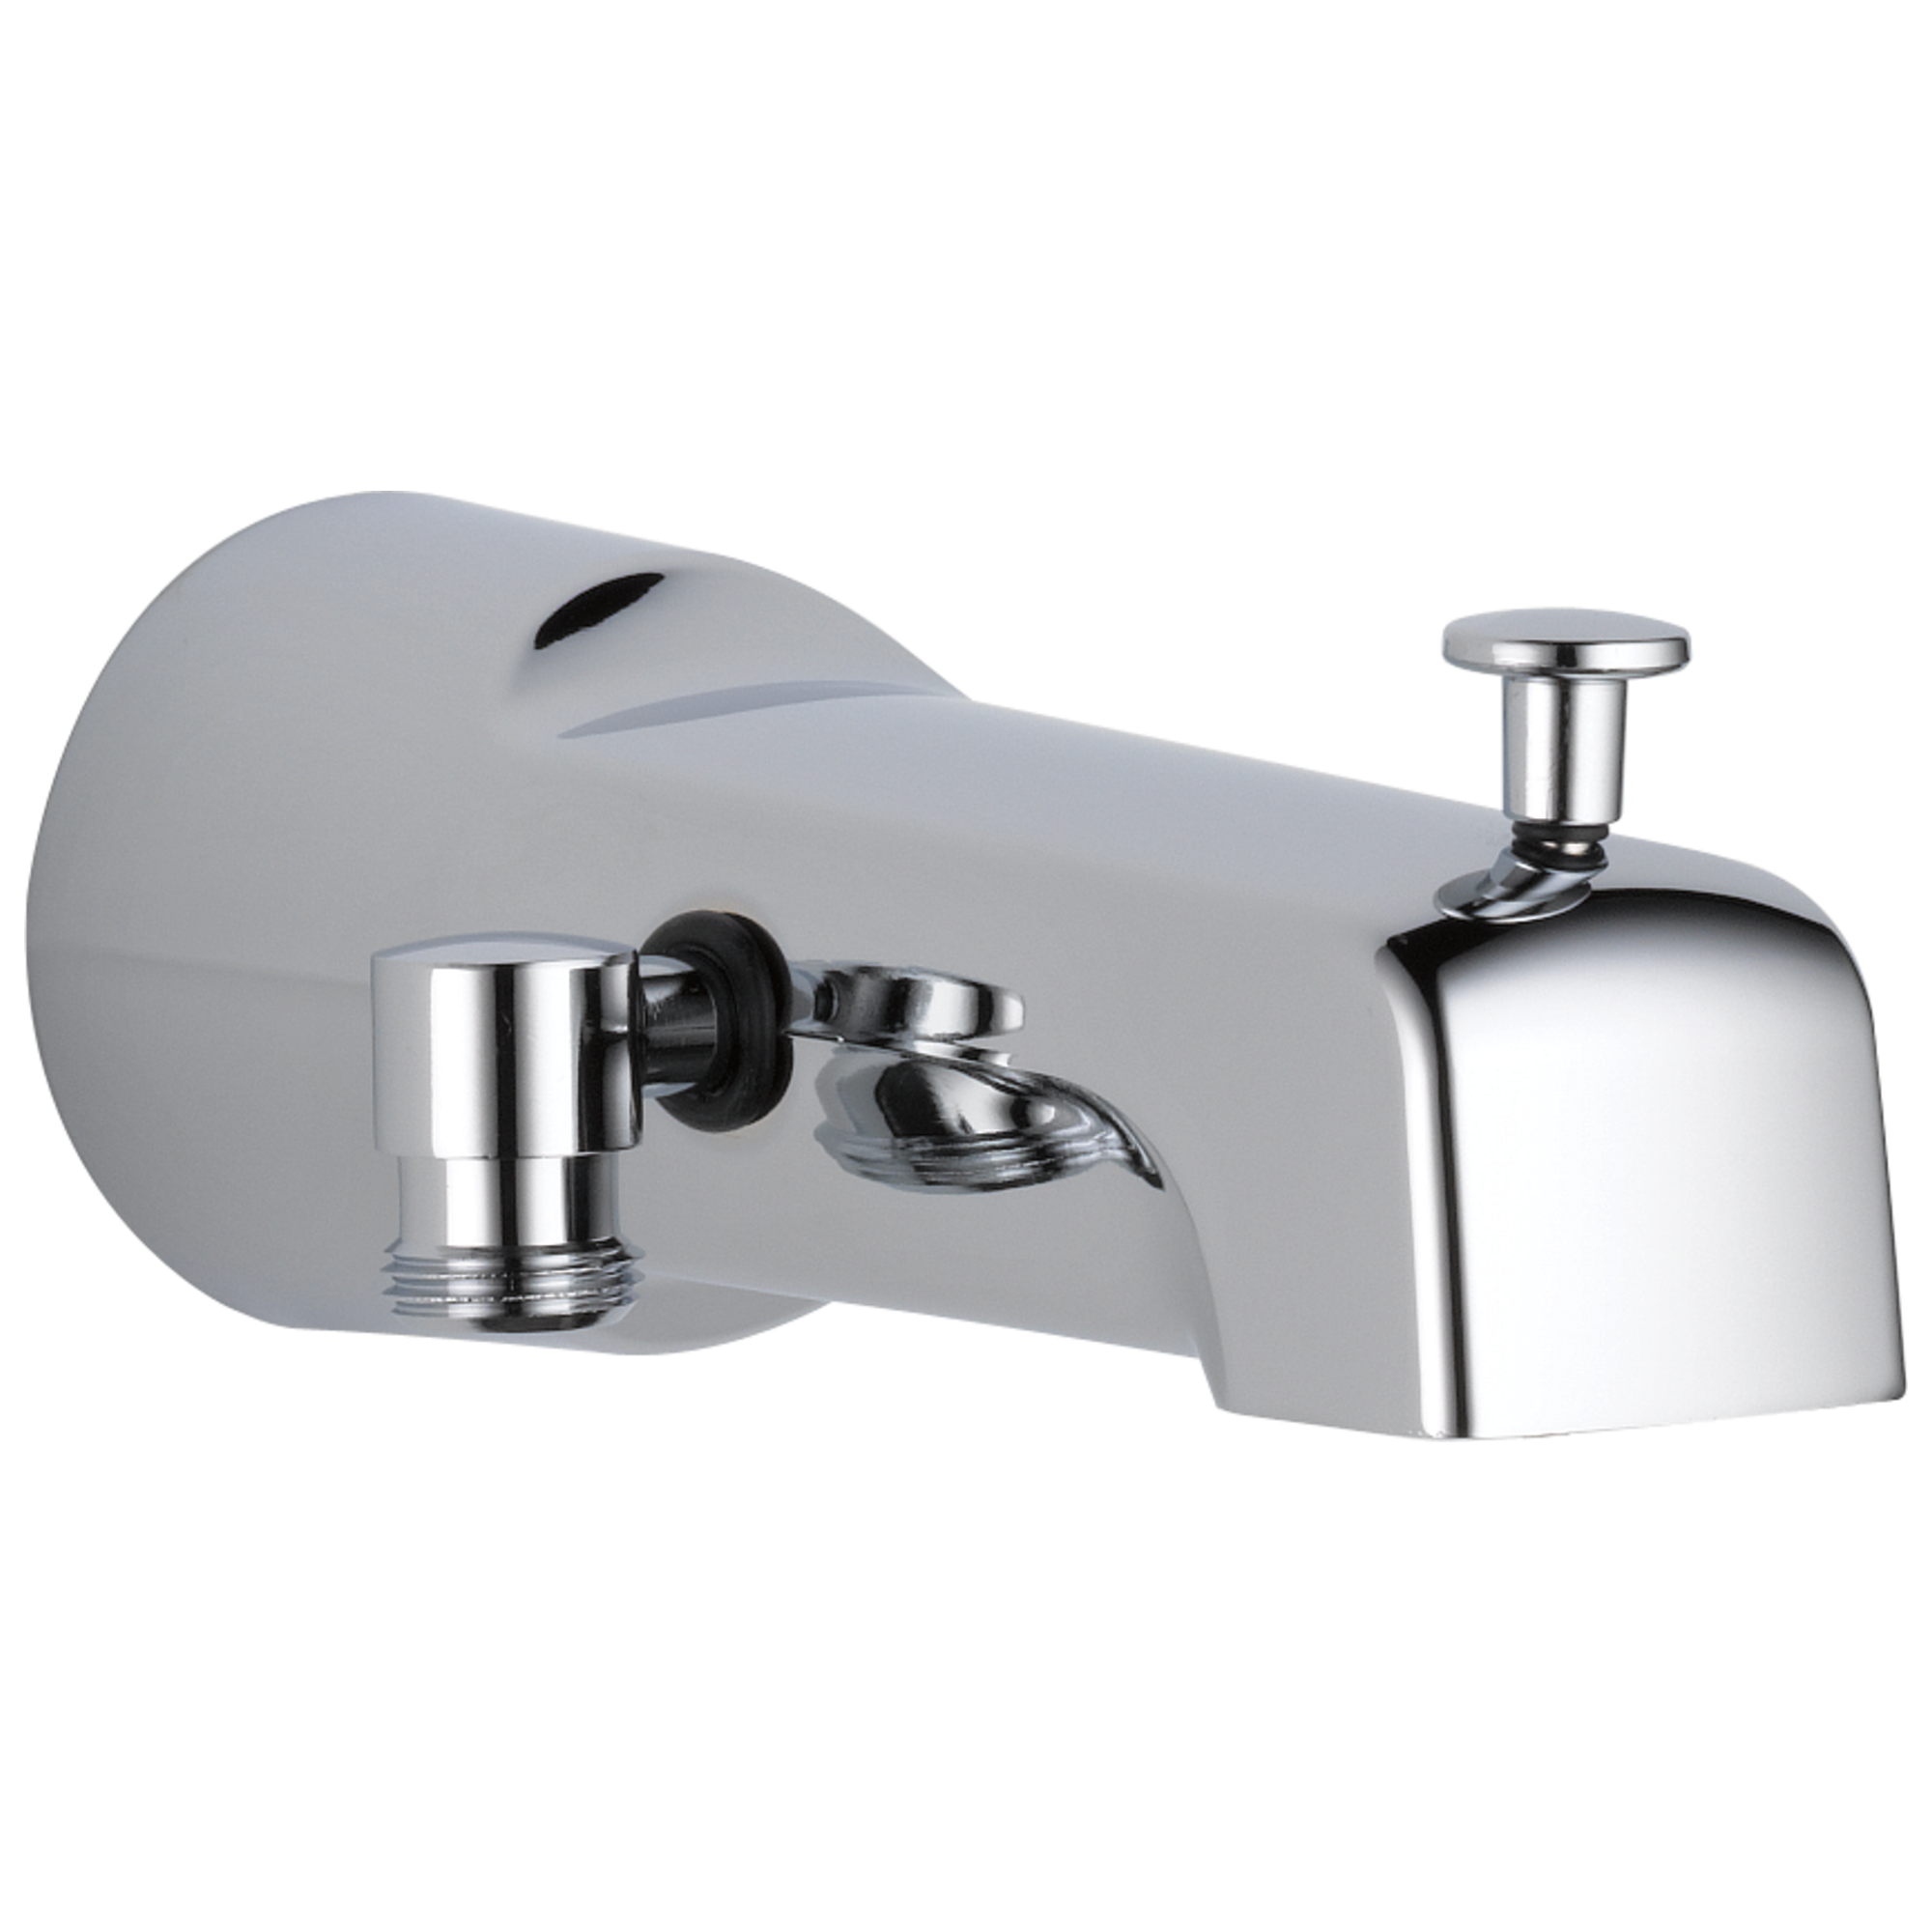 Universal Showering Components: Diverter Tub Spout - Handshower